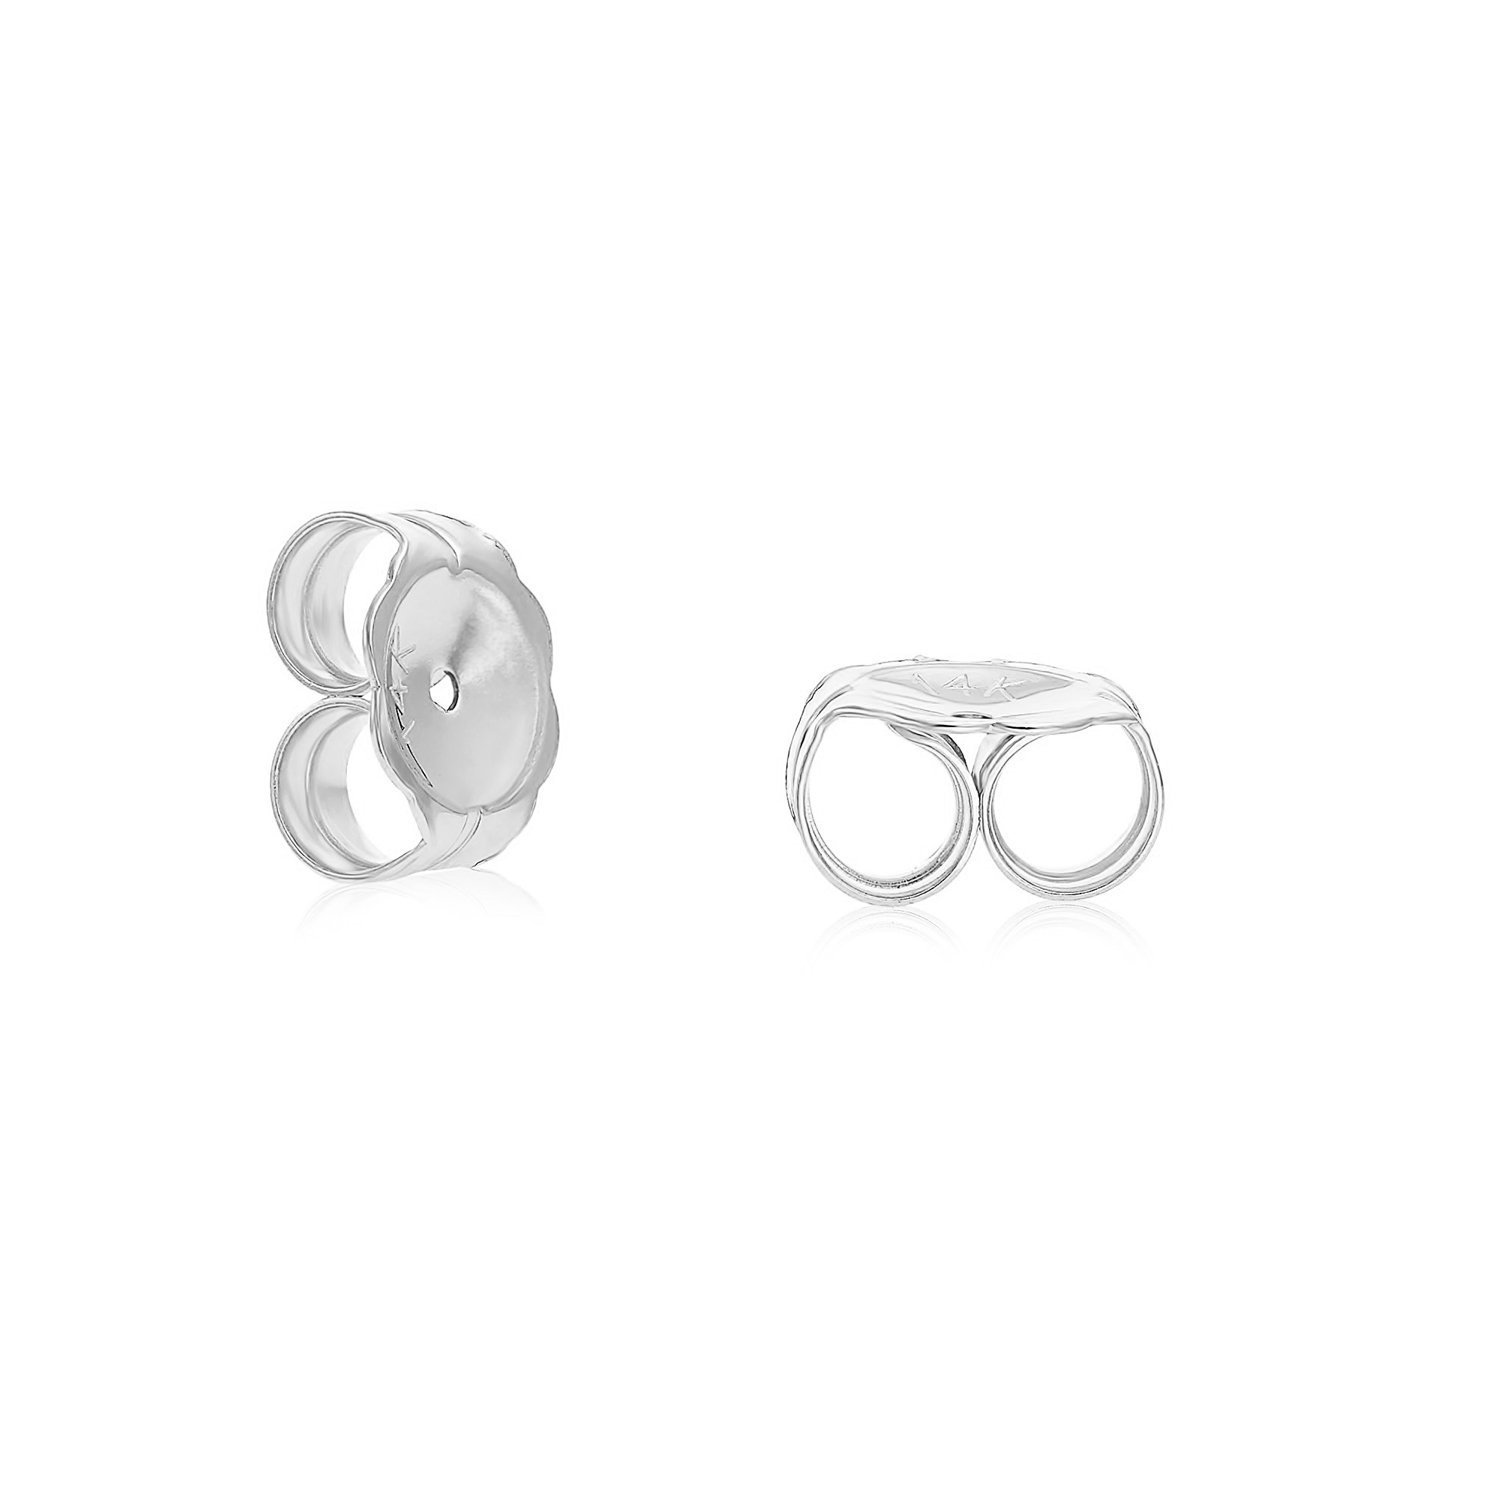 14k Gold Ball Stud Earrings with Secure and Comfortable Friction Backs 7mm Diameter